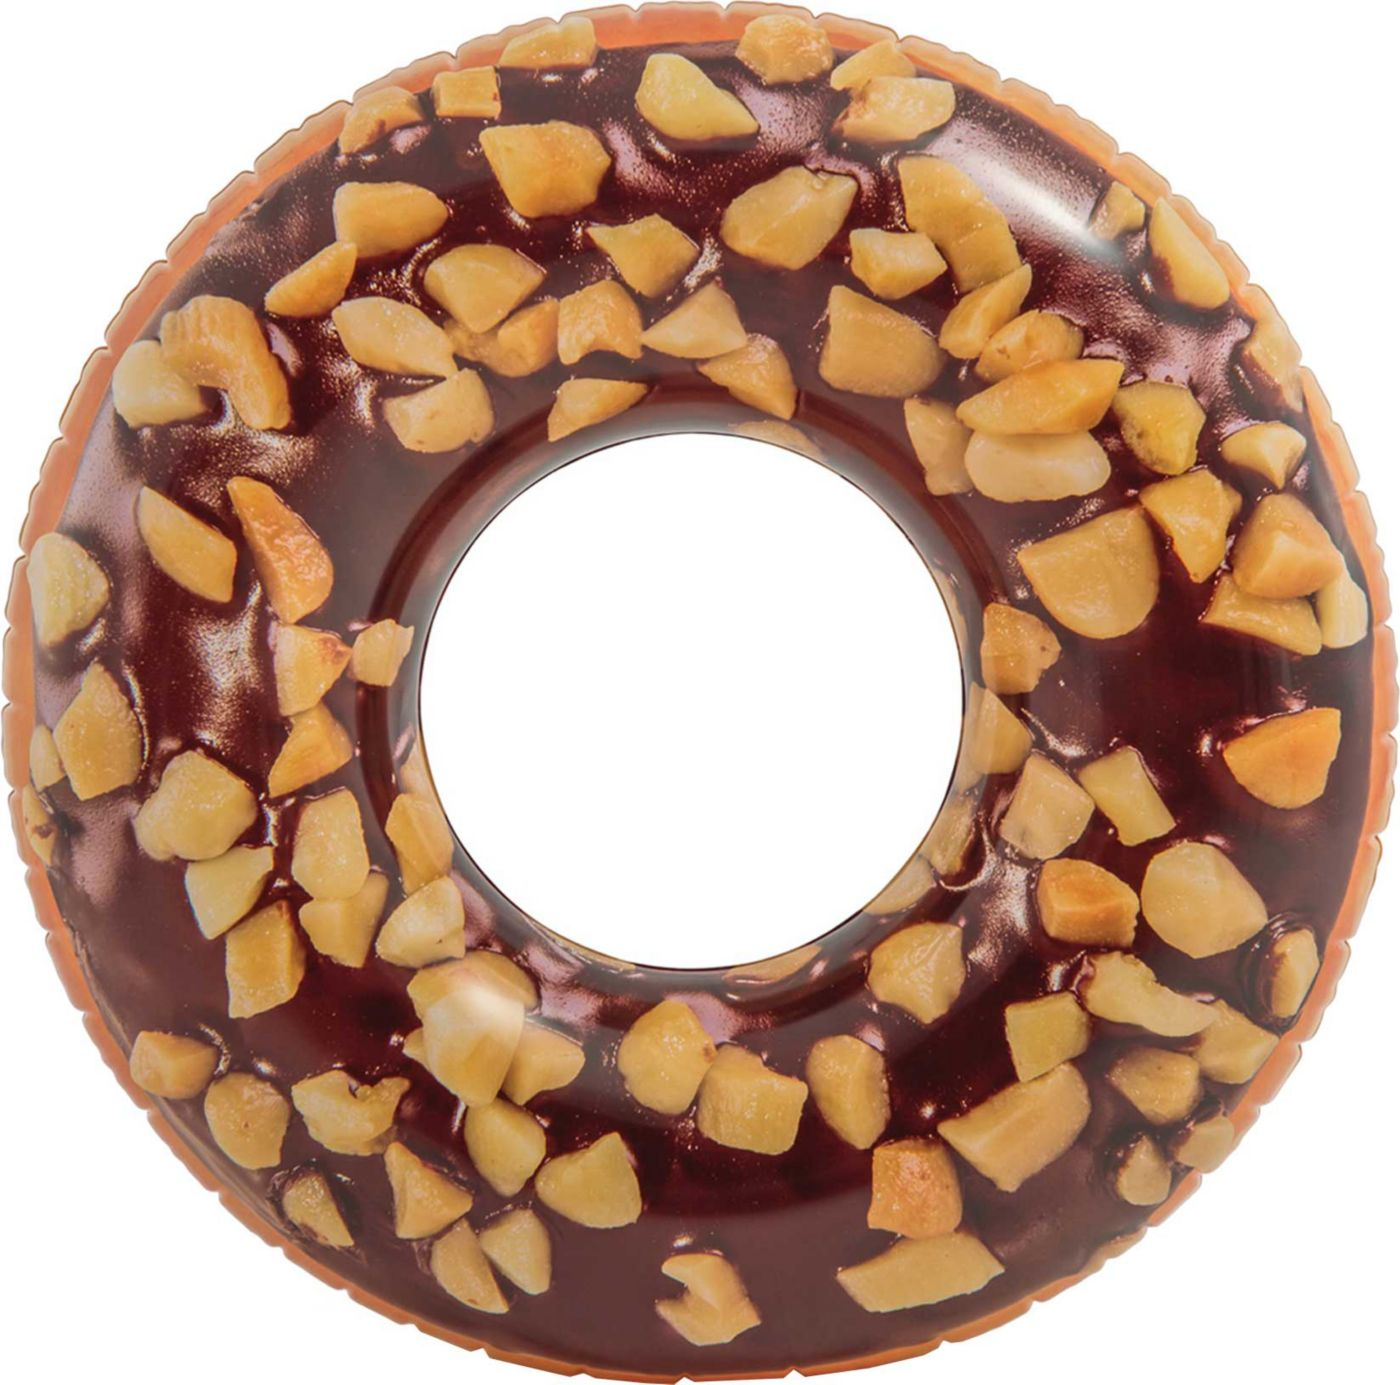 Intex Nutty Chocolate Donut Inflatable Tube